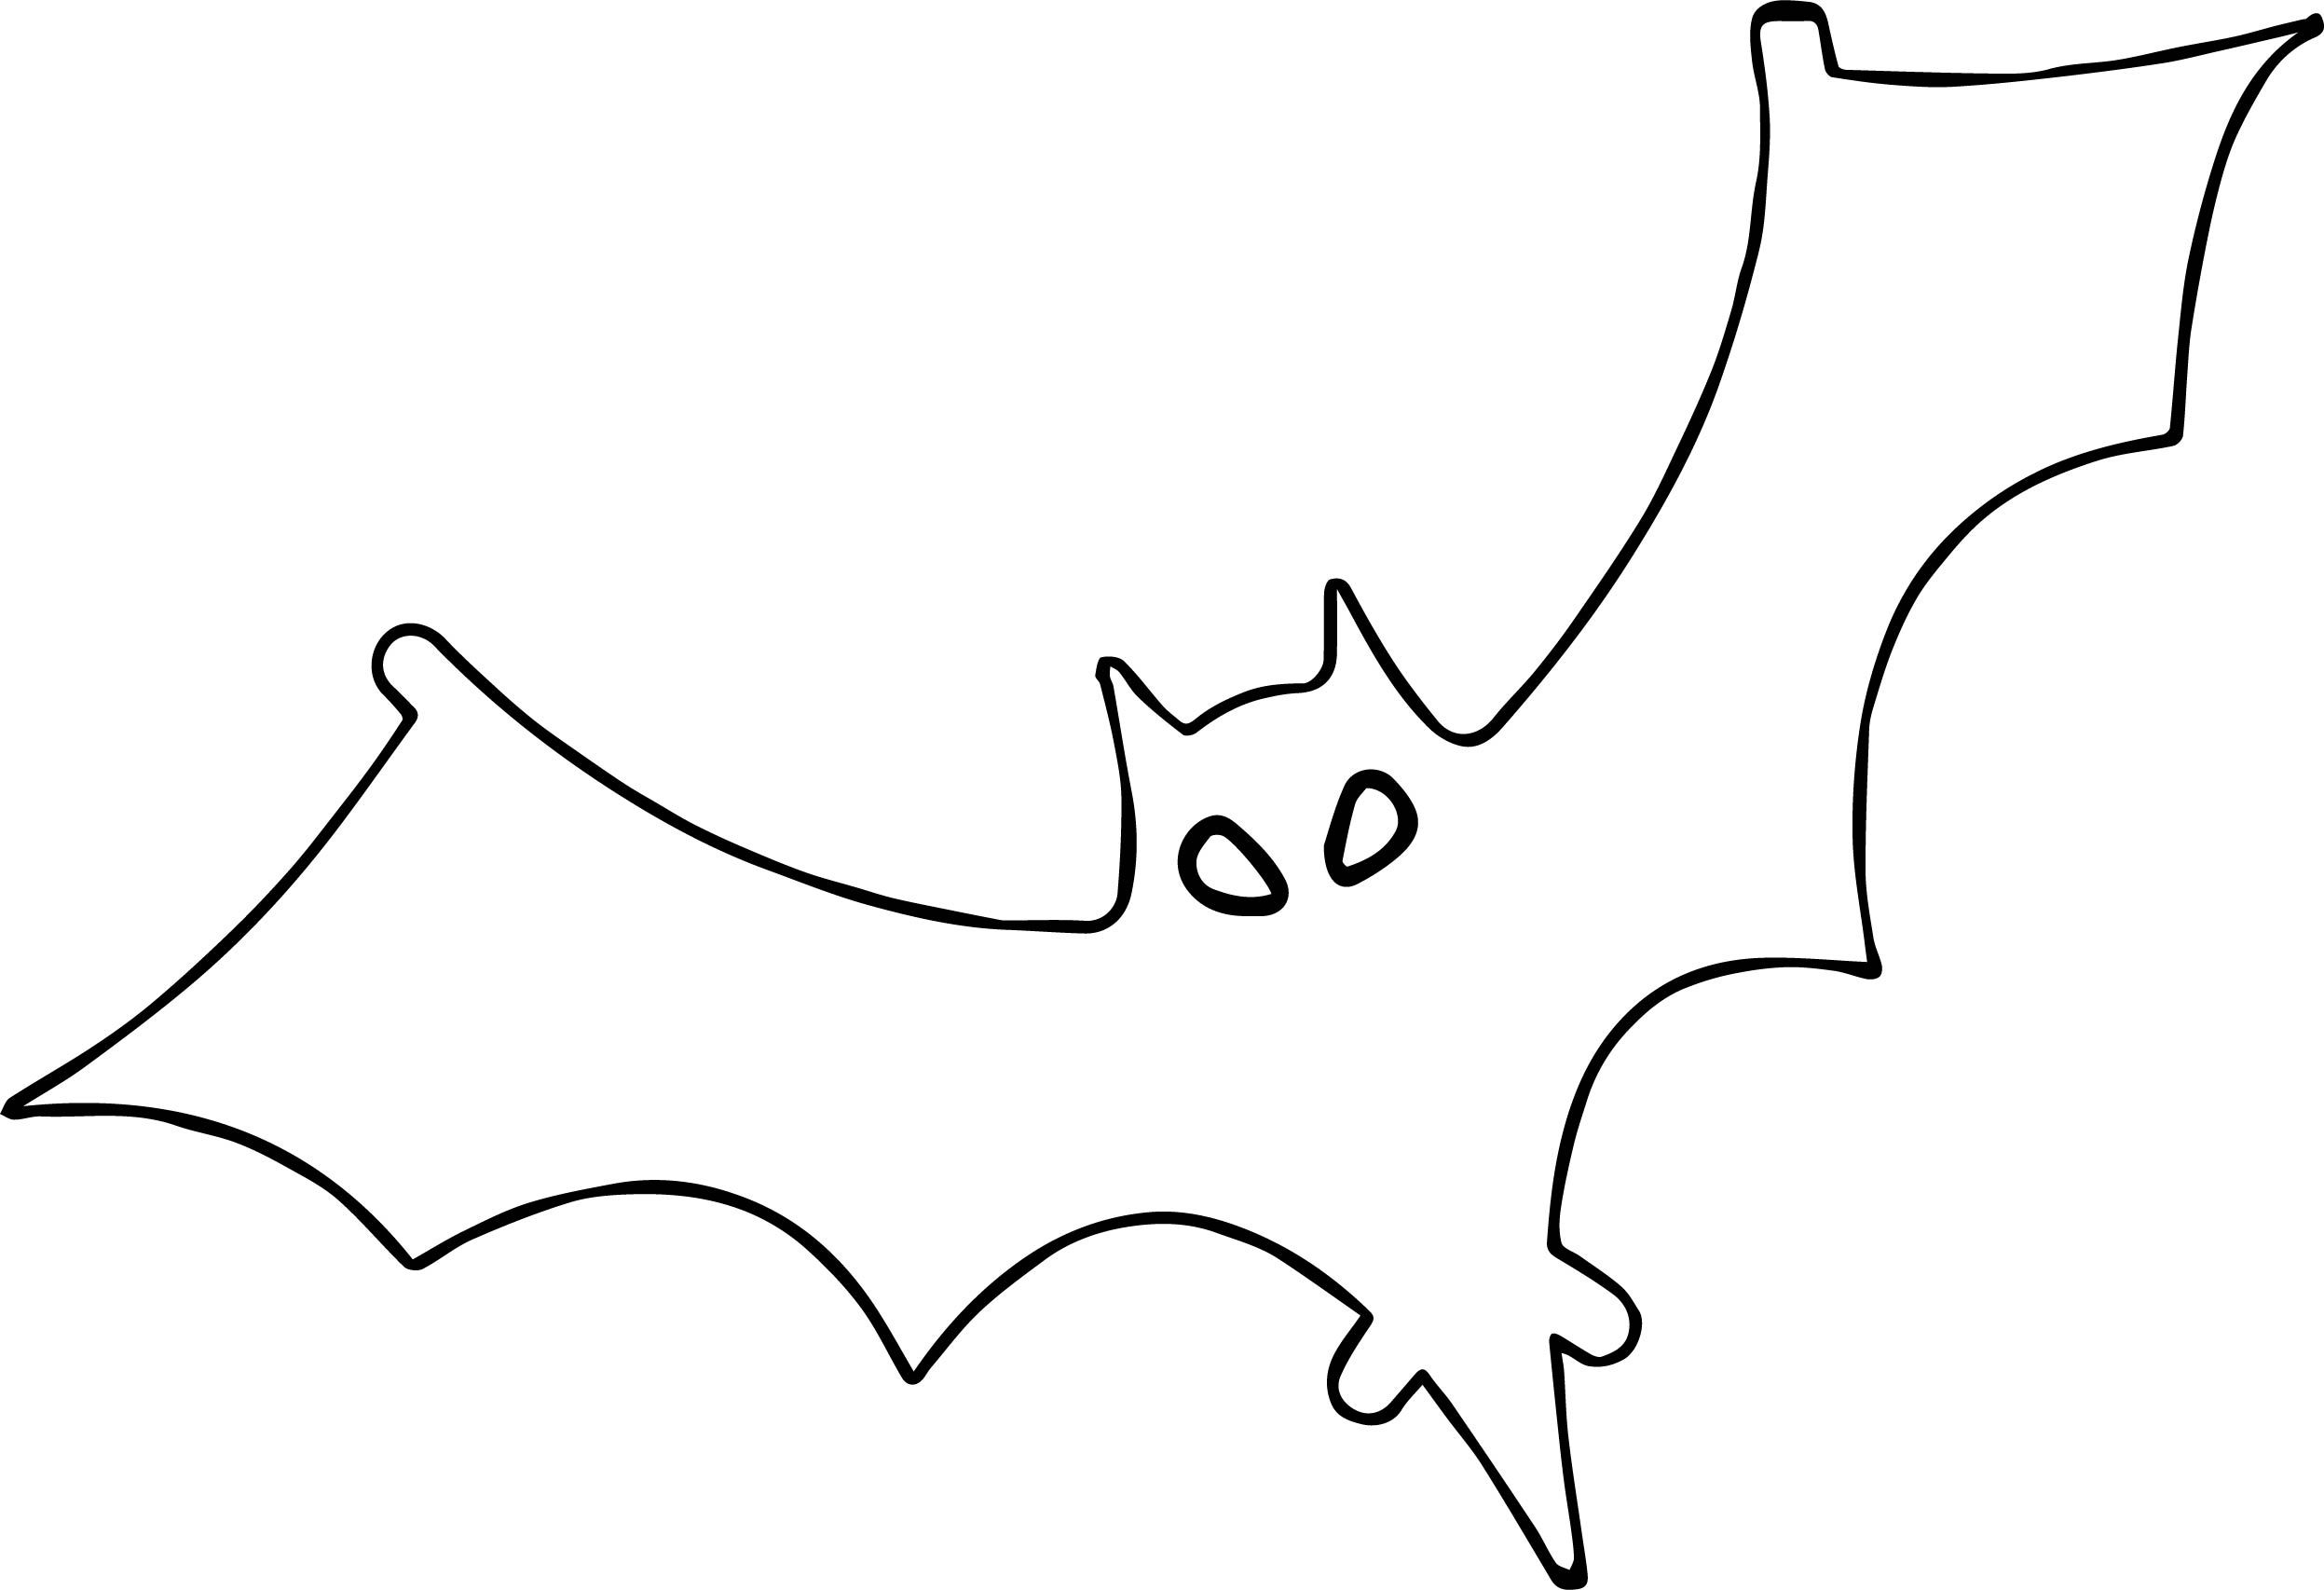 Cool Outline Bat Coloring Page With Images Bat Coloring Pages